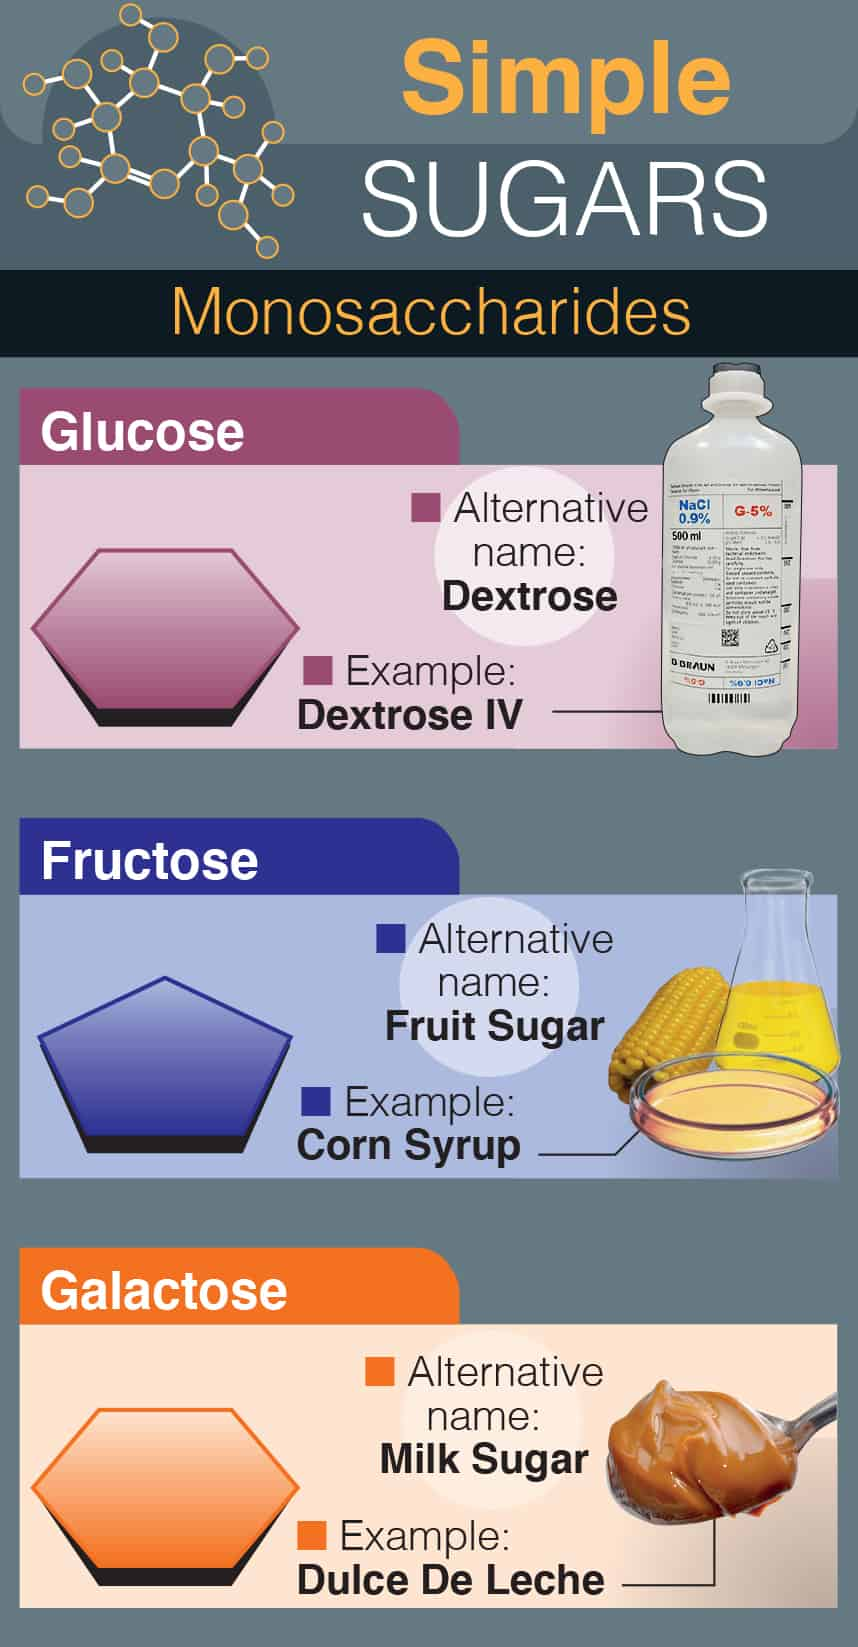 Simple Sugars: Monosaccharides